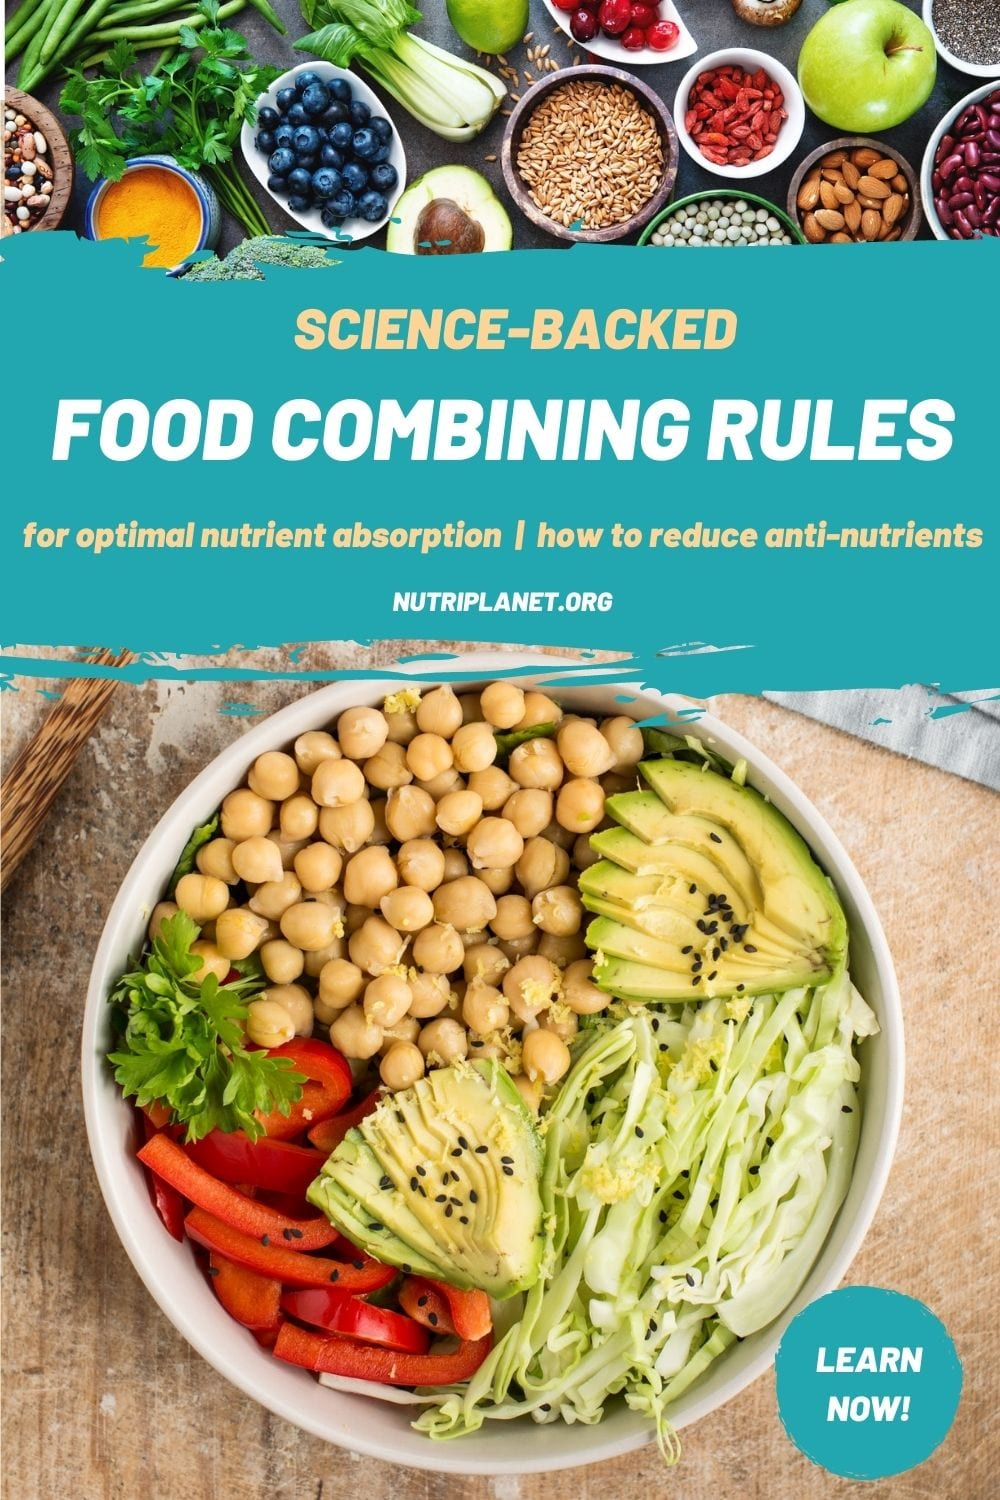 Learn food combining rules that are backed by science to enhance nutrient absorption and degrade the effect of anti-nutrients.